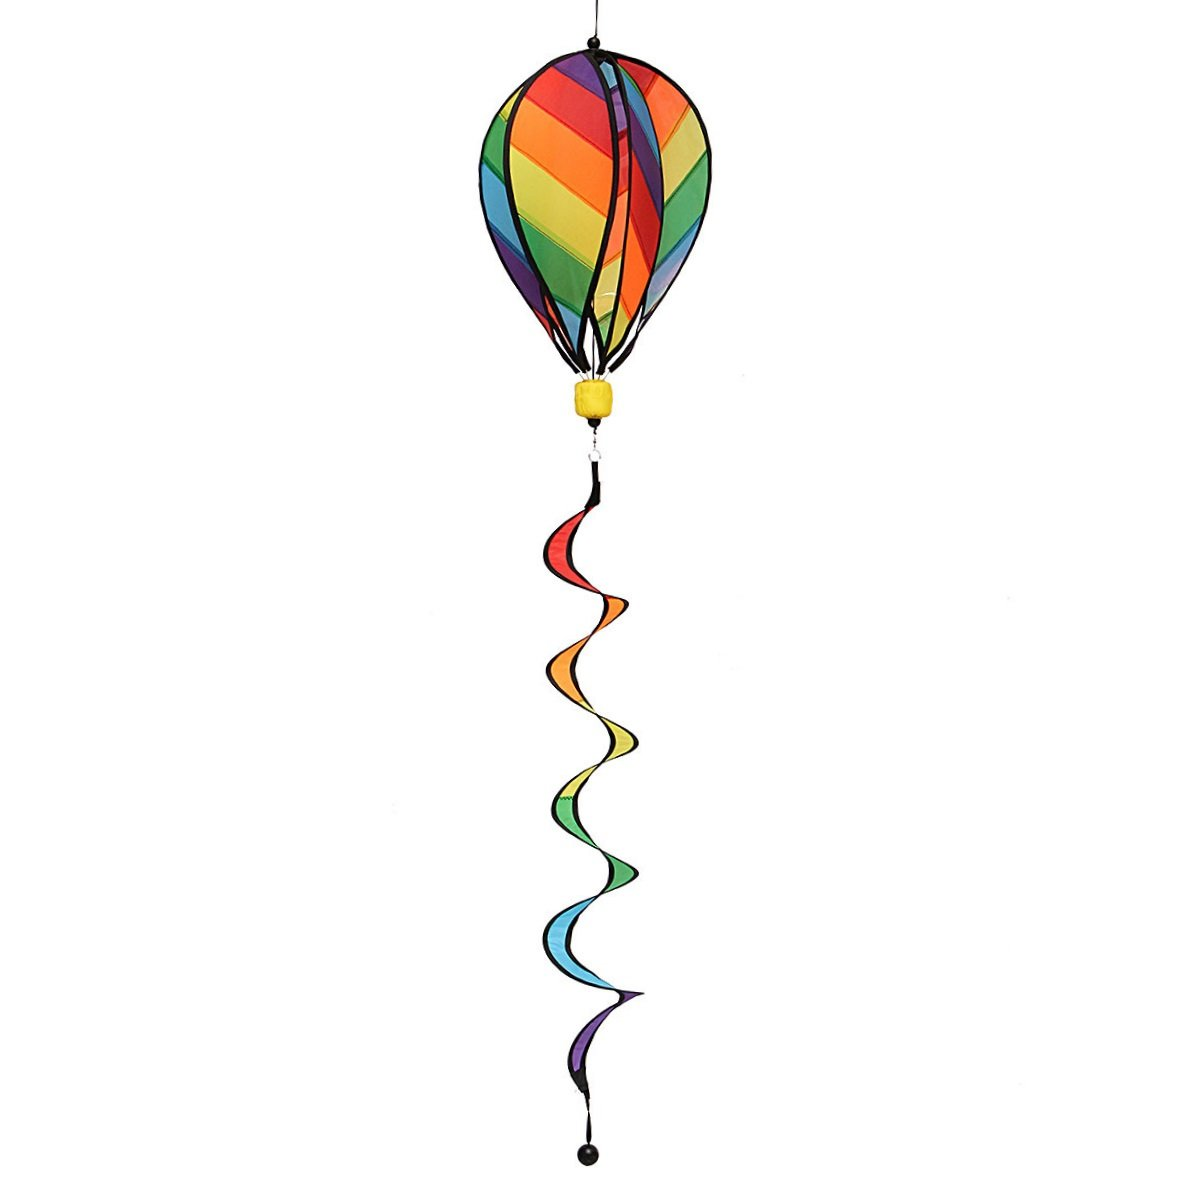 Garden Yard Wind Spinner, Mini-Factory Colorful Hot Air Balloon Wind Spinner Hanging Decoration for Yard & Garden